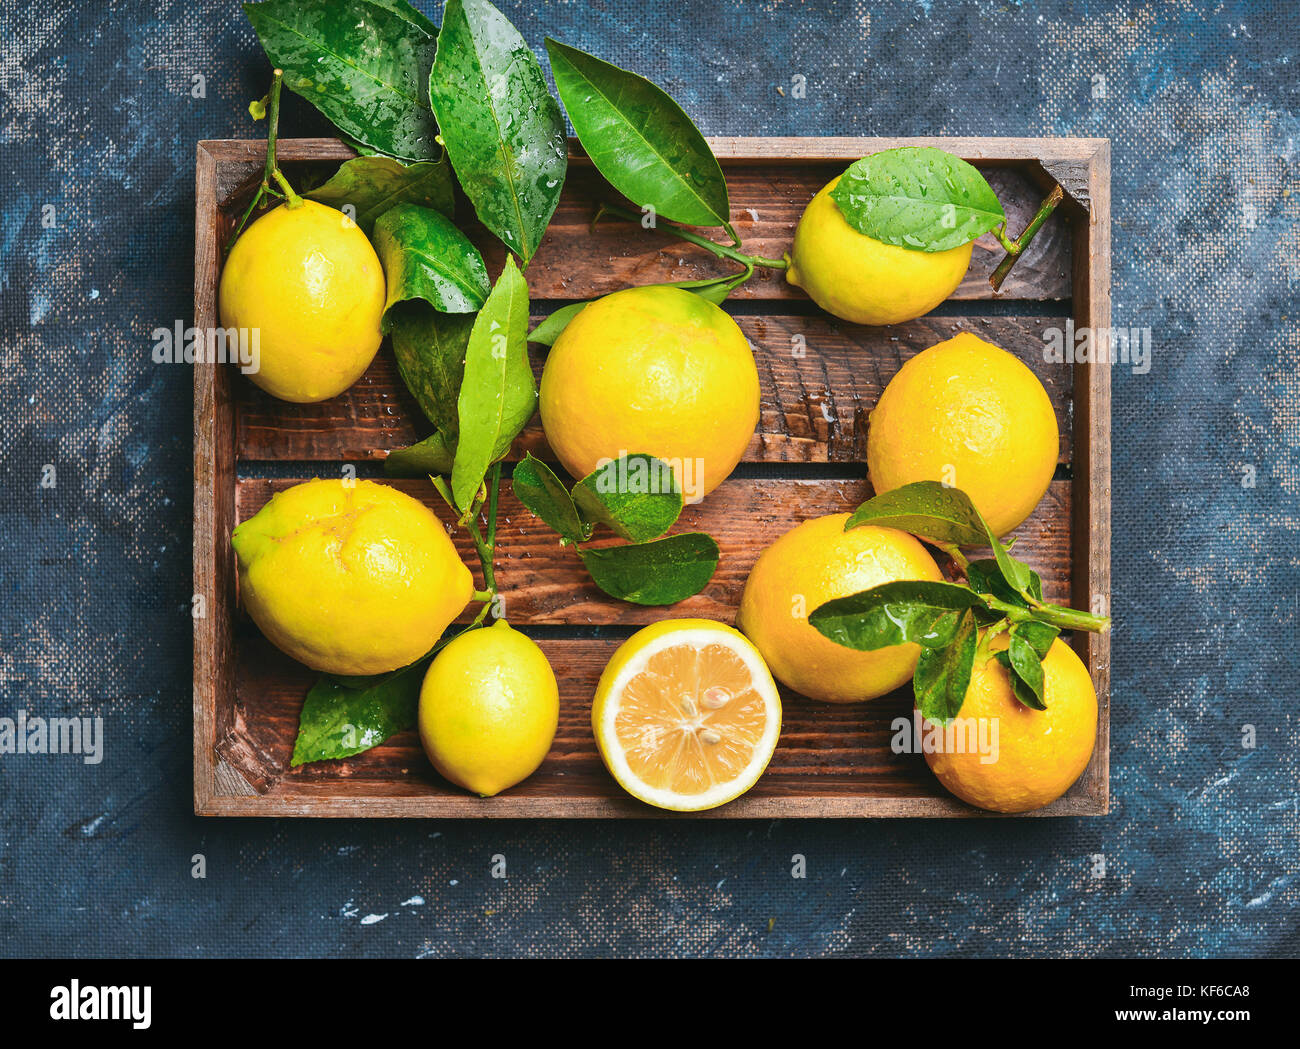 Freshly picked lemons with leaves - Stock Image